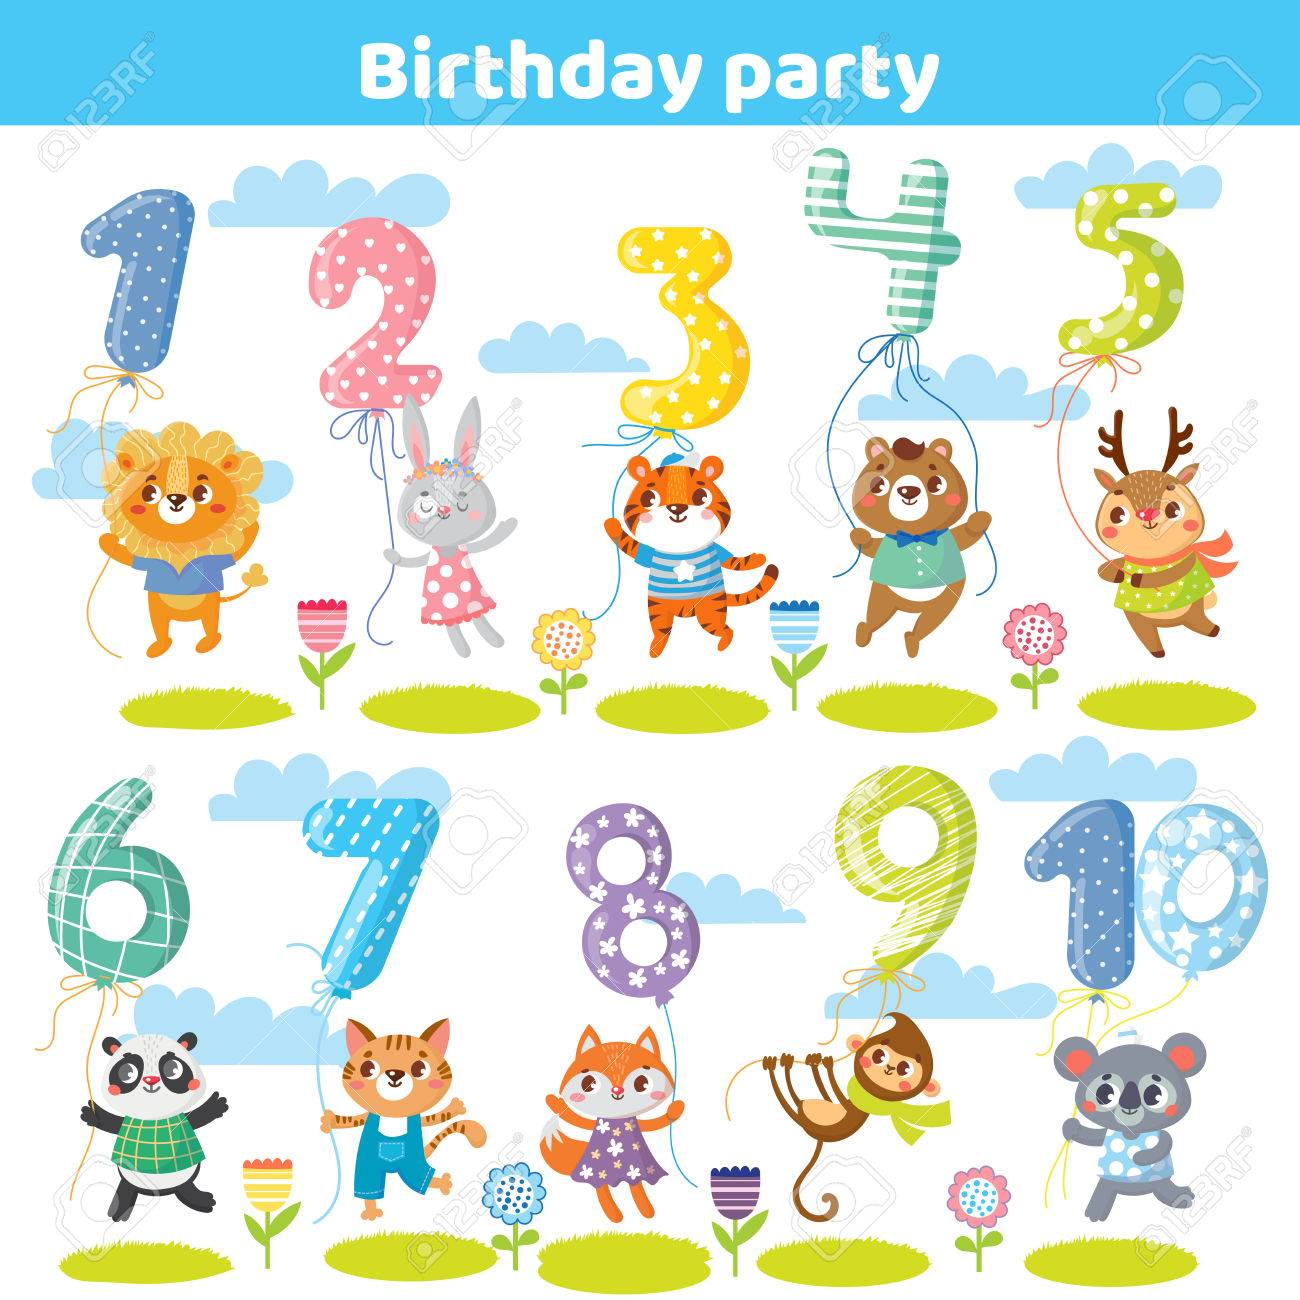 Birthday numbers with funny animals for invitation card royalty free banco de imagens birthday numbers with funny animals for invitation card stopboris Images